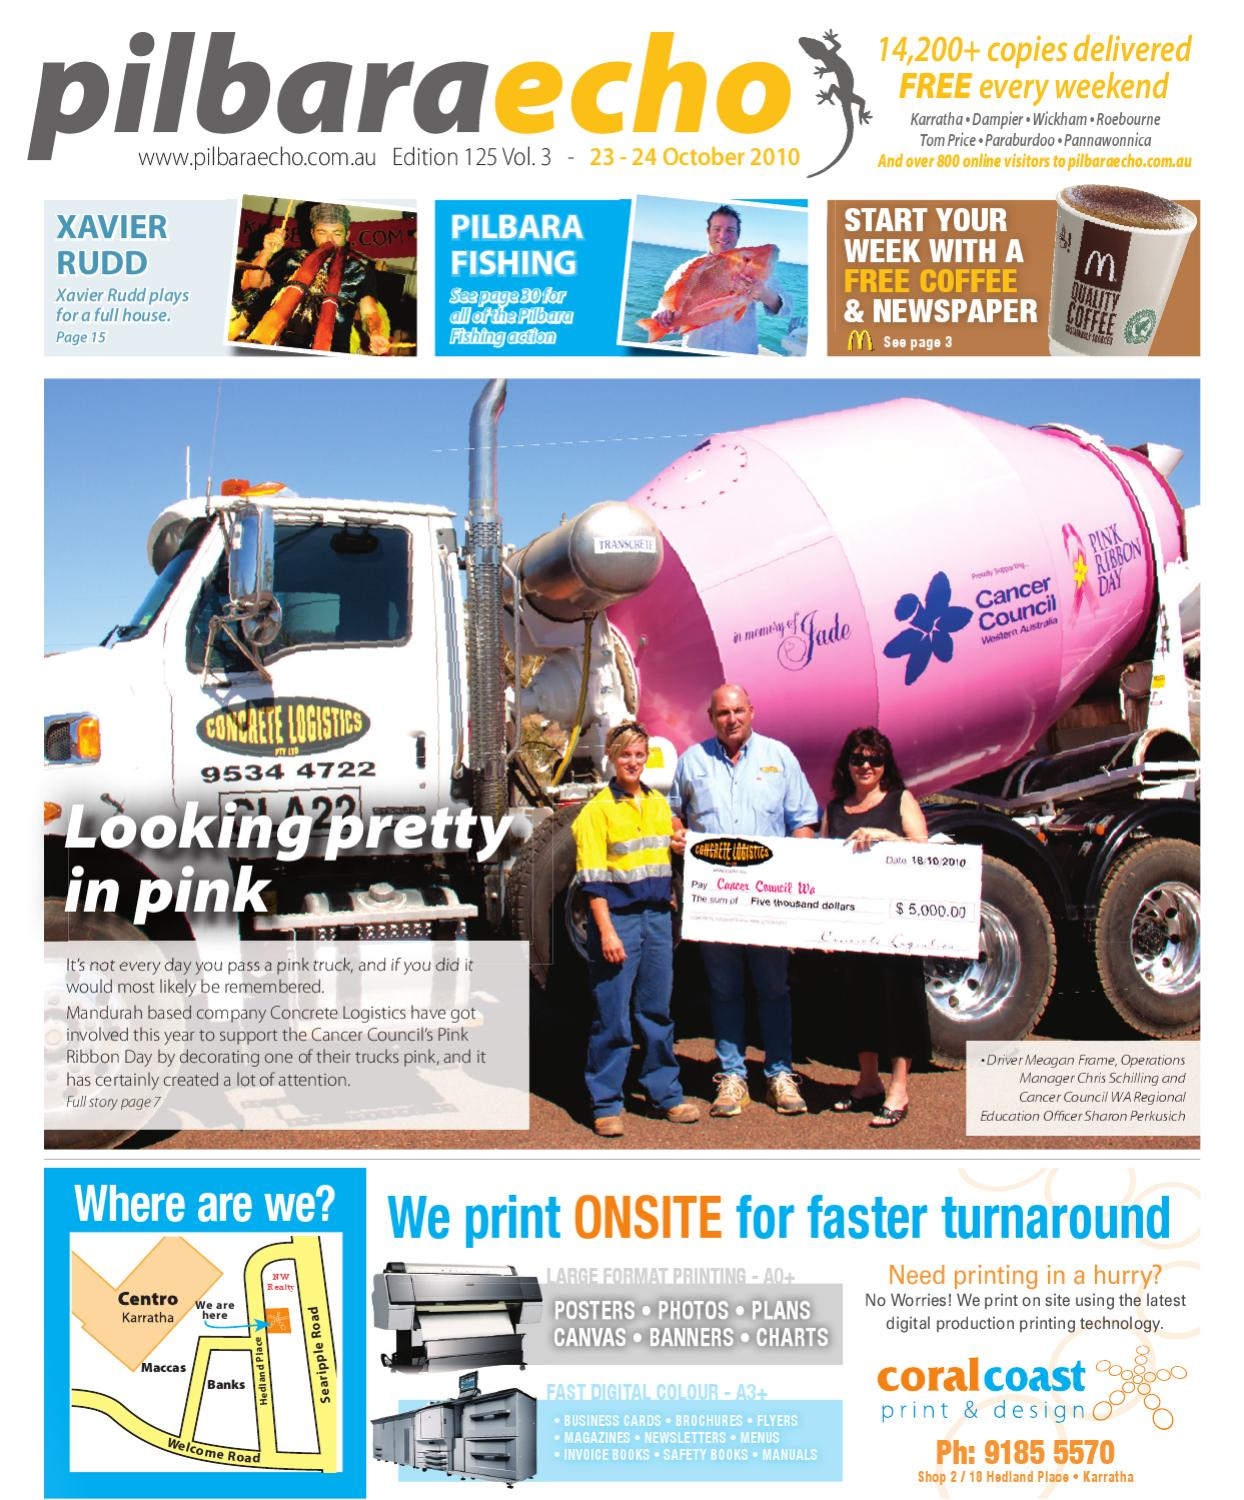 Pilbara Echo 23 - 24 October 2010 by Pilbara Echo Newspaper